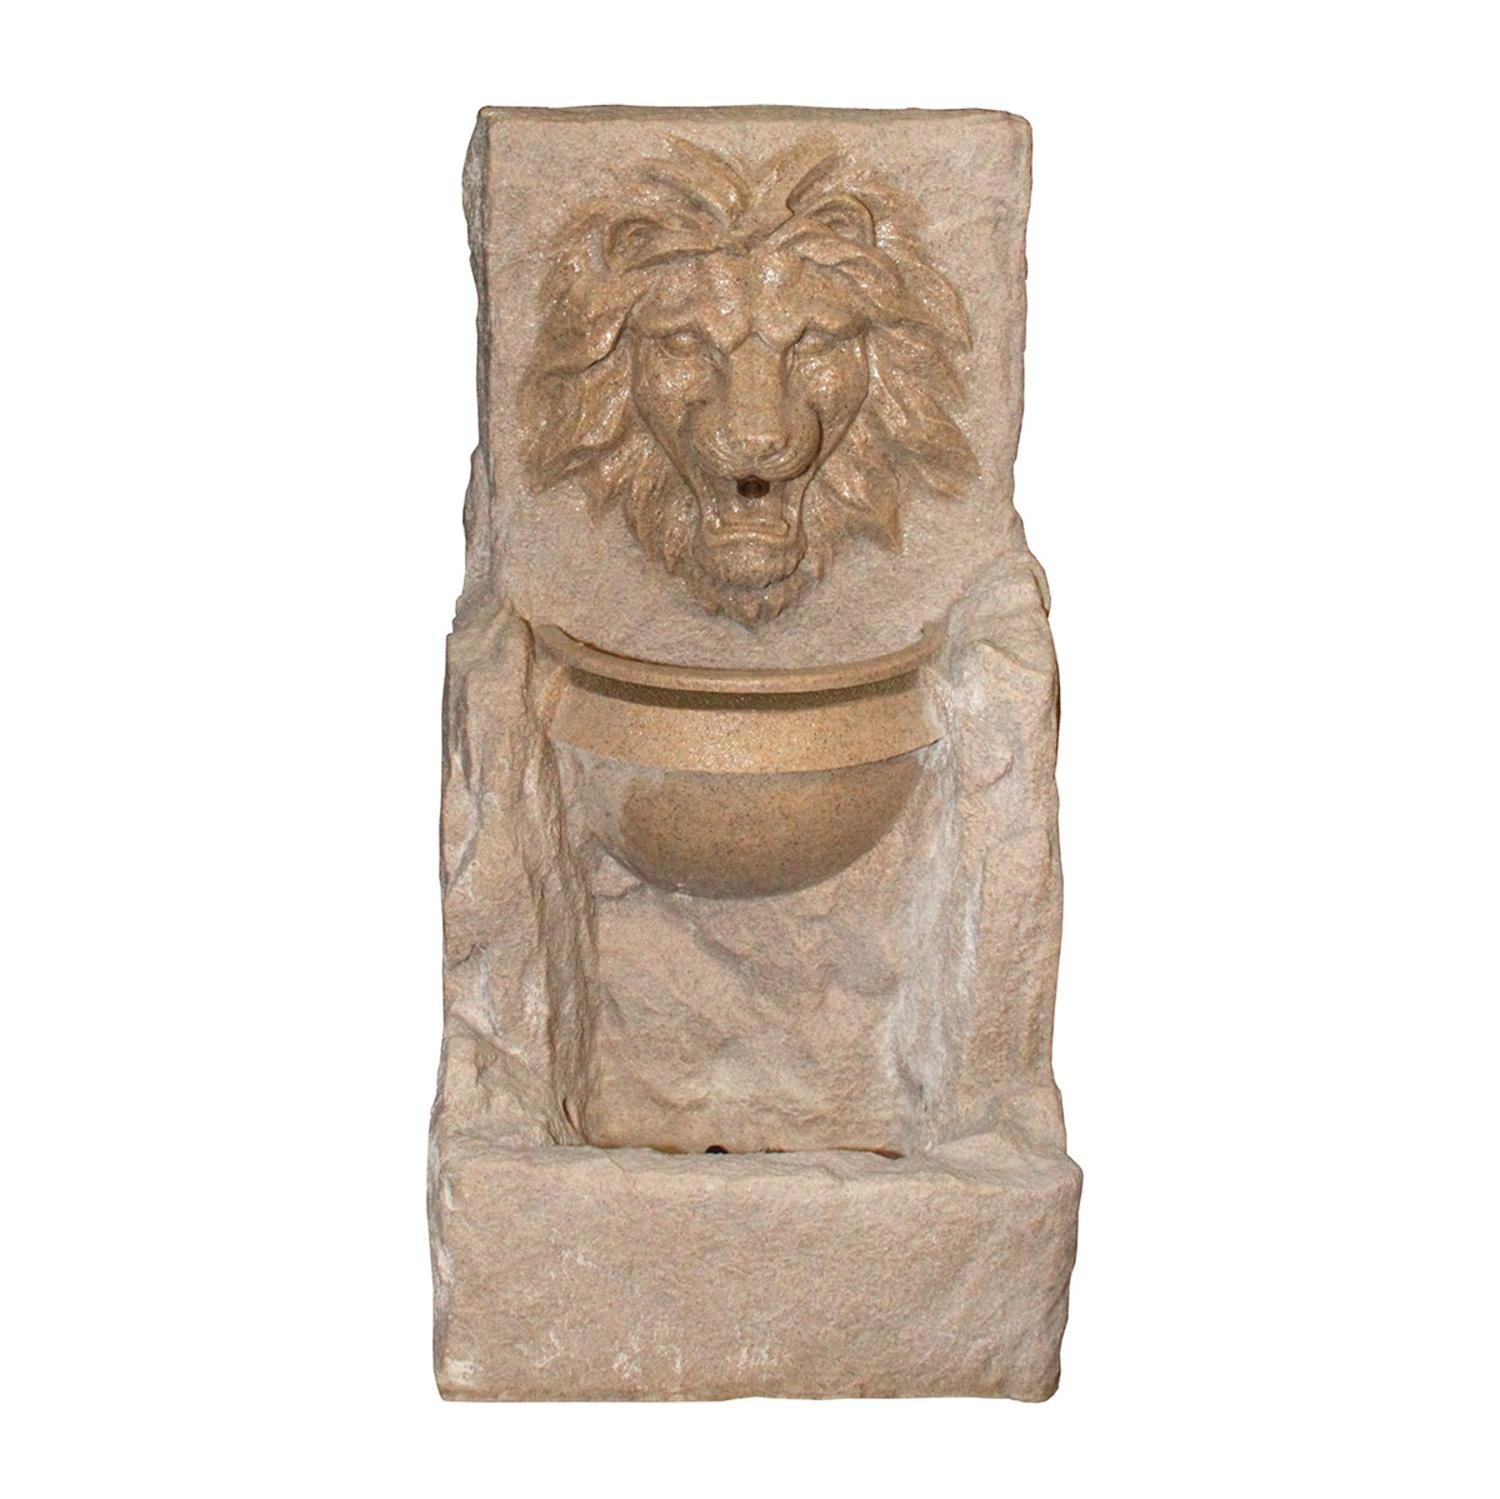 Northlight QL88867 LED Lighted Fierce Lion Head Spring Outdoor Garden Water Statuary and Fountains, 38.5'', Brown